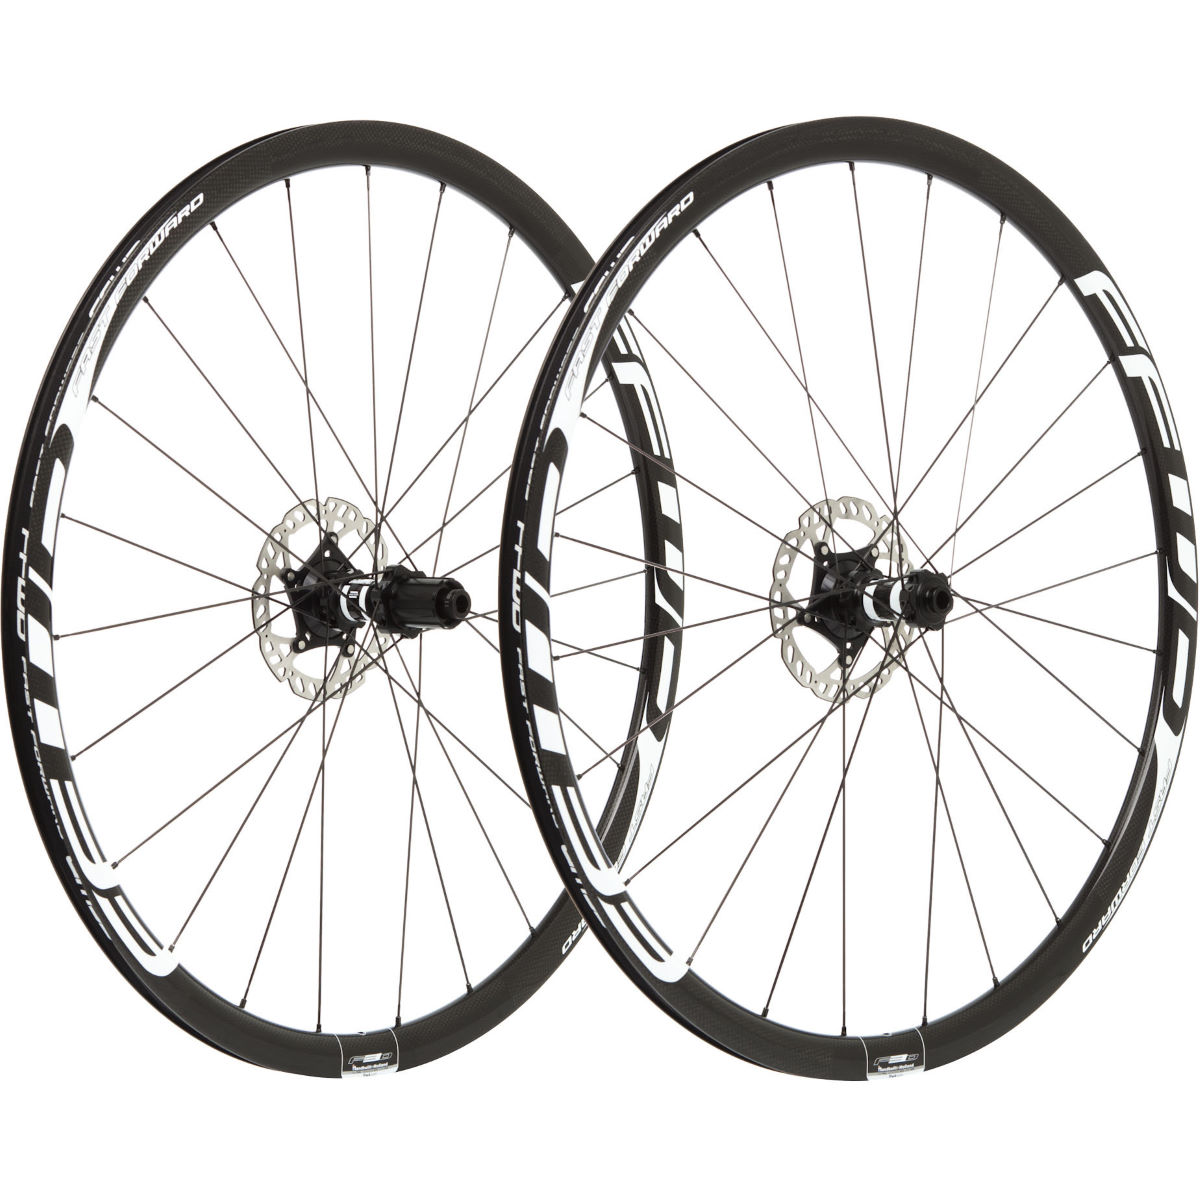 Fast Forward Carbon F3D FCC 30mm SP DB Wheelset - Ruedas de competición